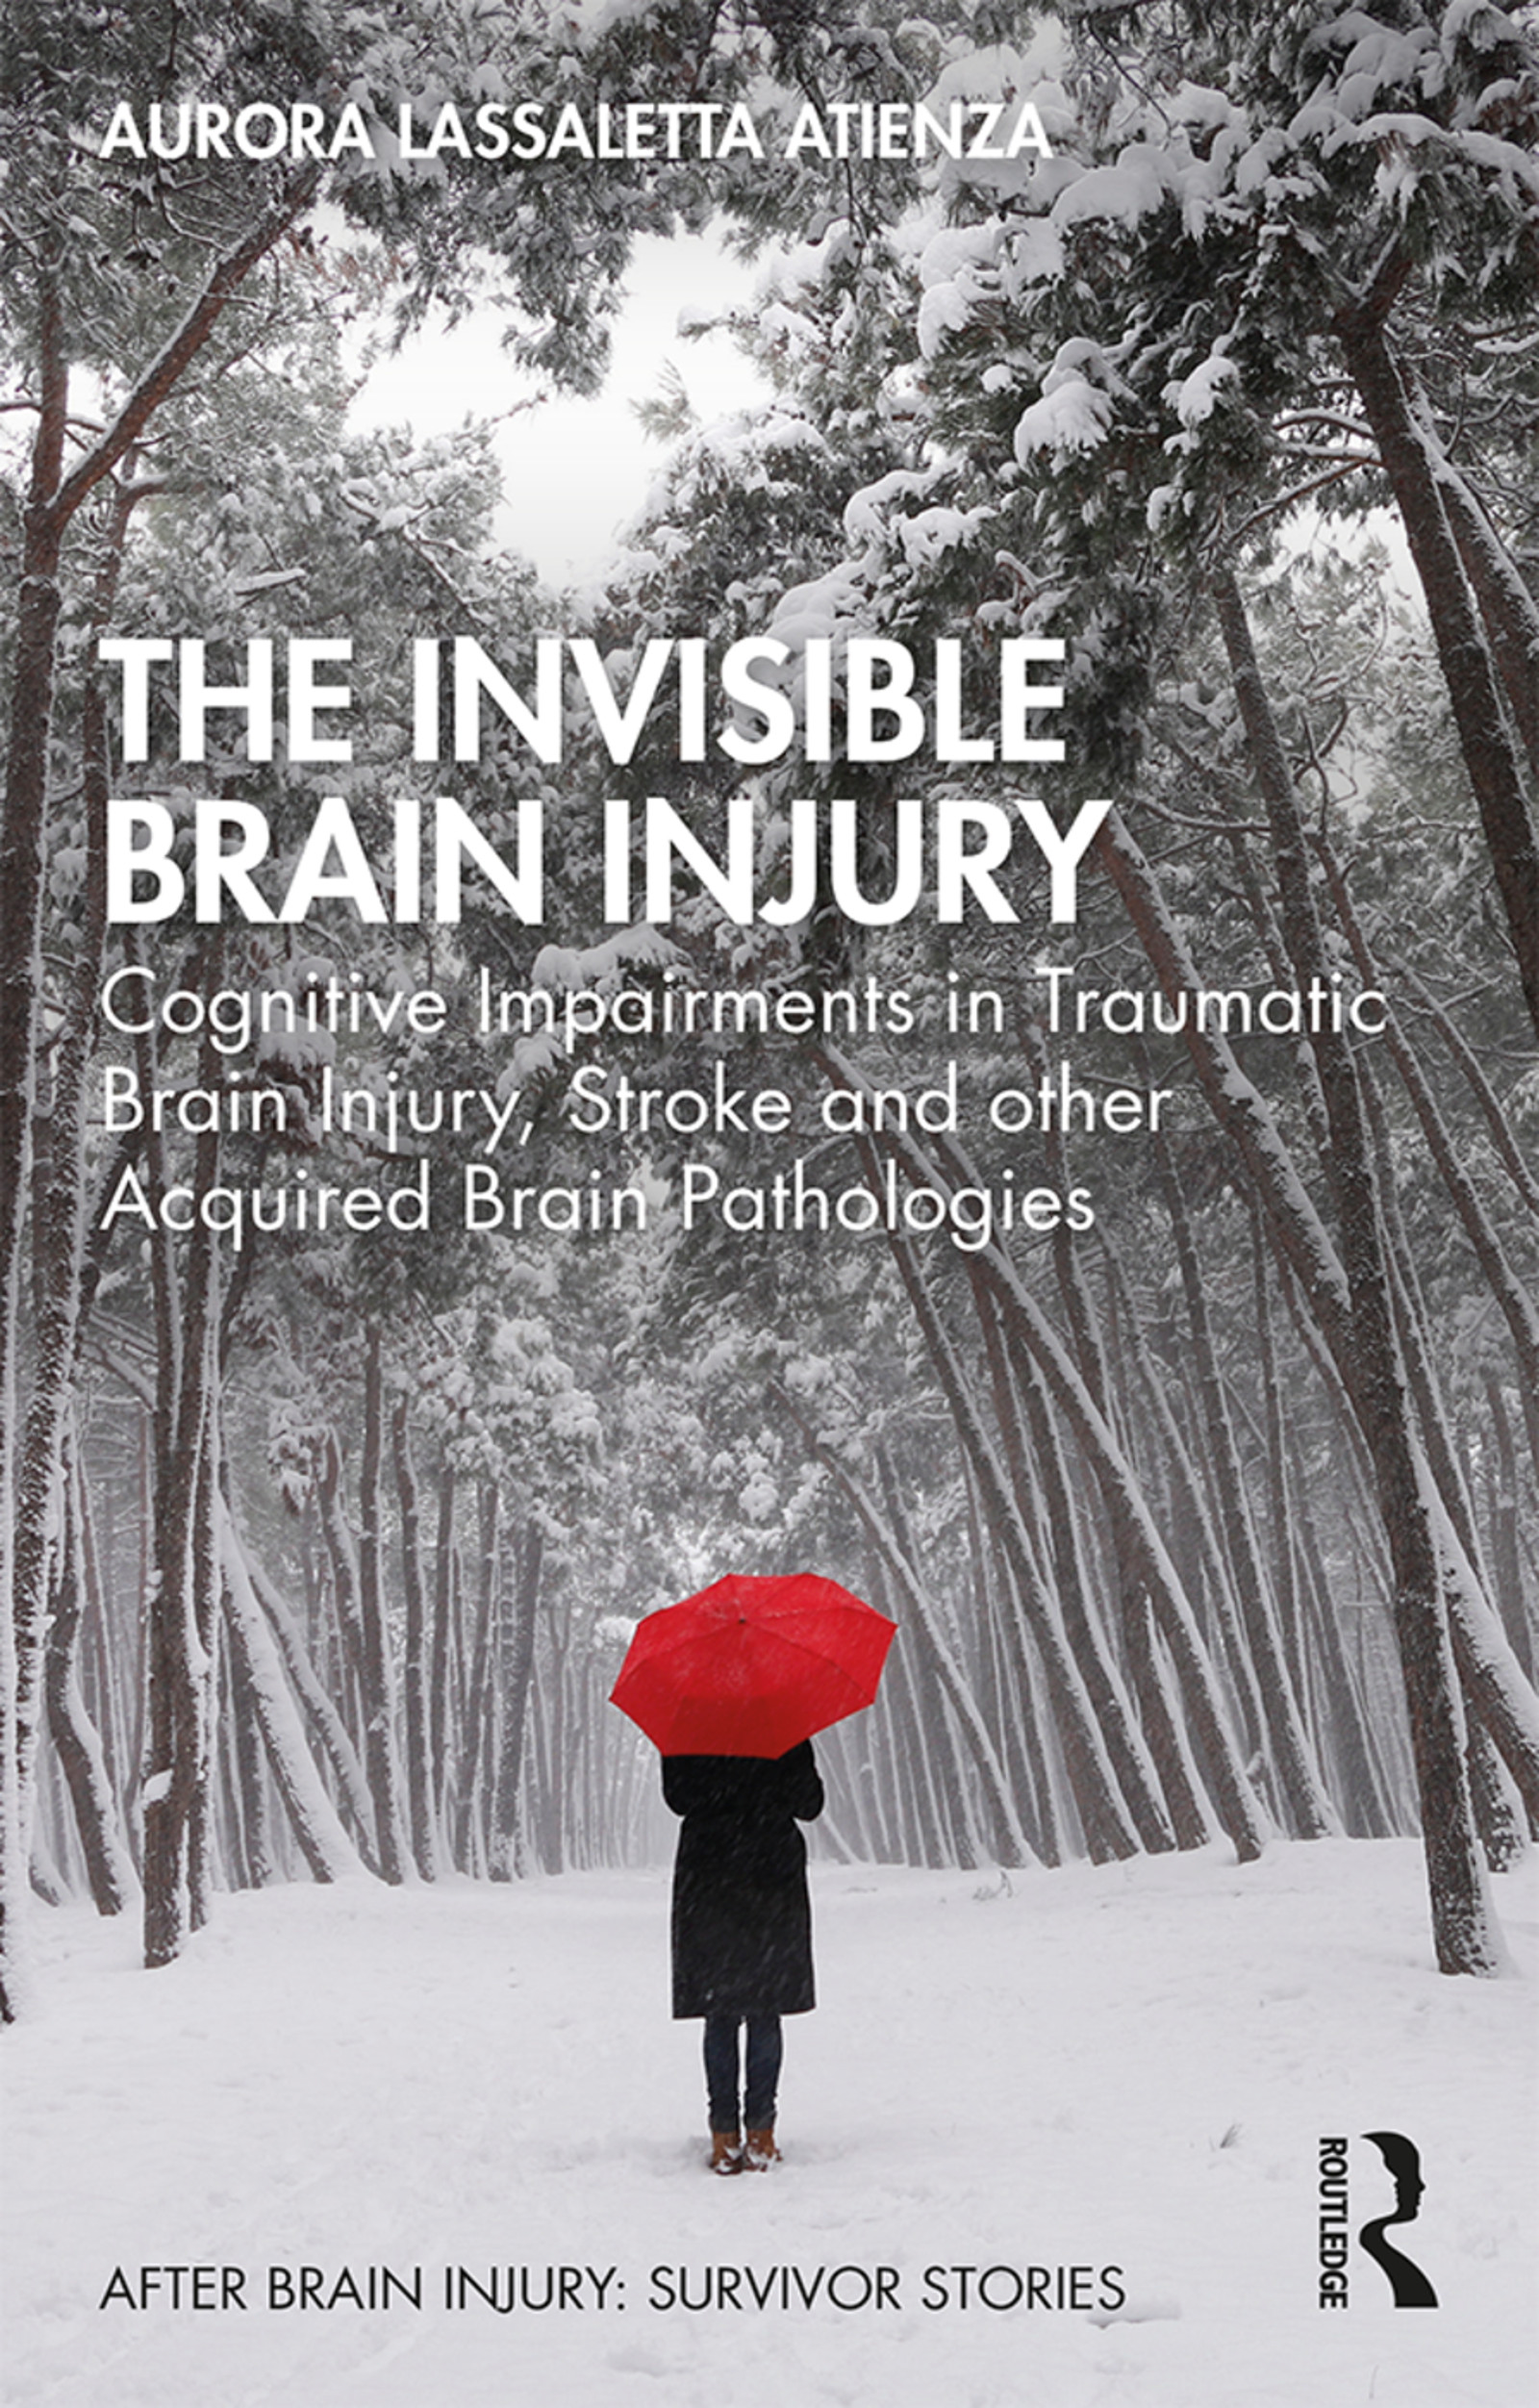 The Invisible Brain Injury: Cognitive Impairments in Traumatic Brain Injury, Stroke and other Acquired Brain Pathologies book cover